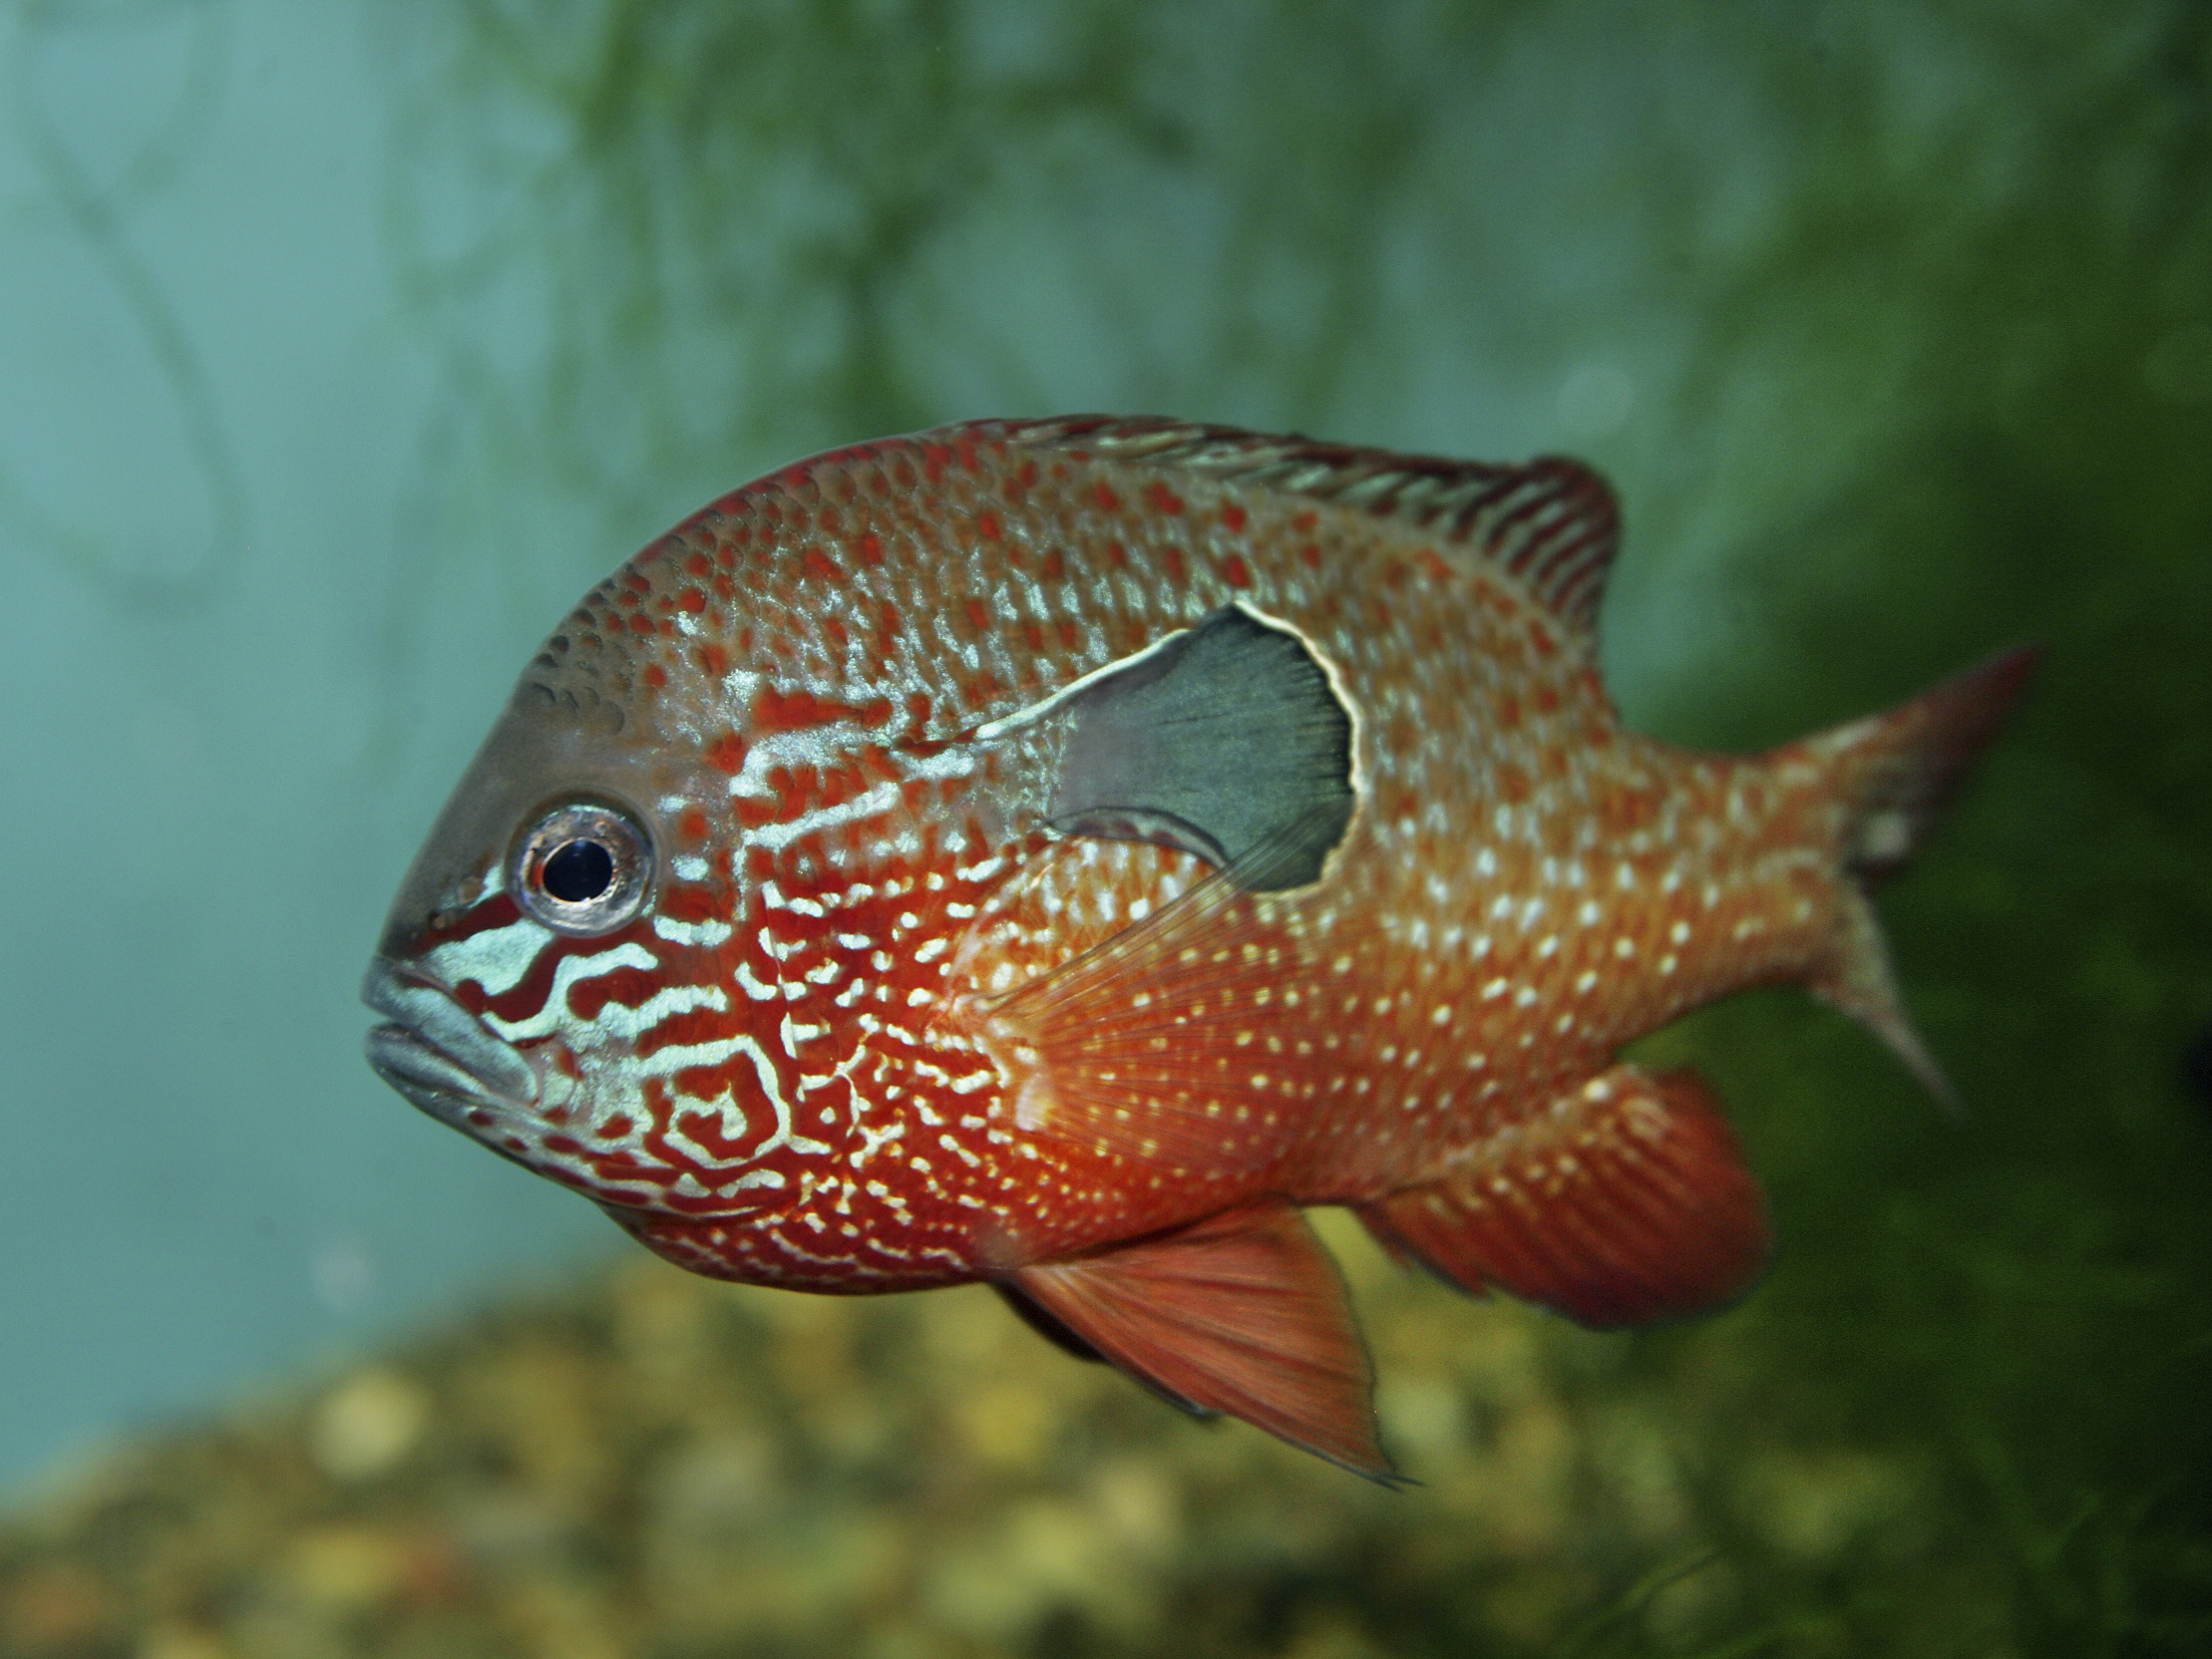 Freshwater sunfish images galleries for Freshwater fishing games